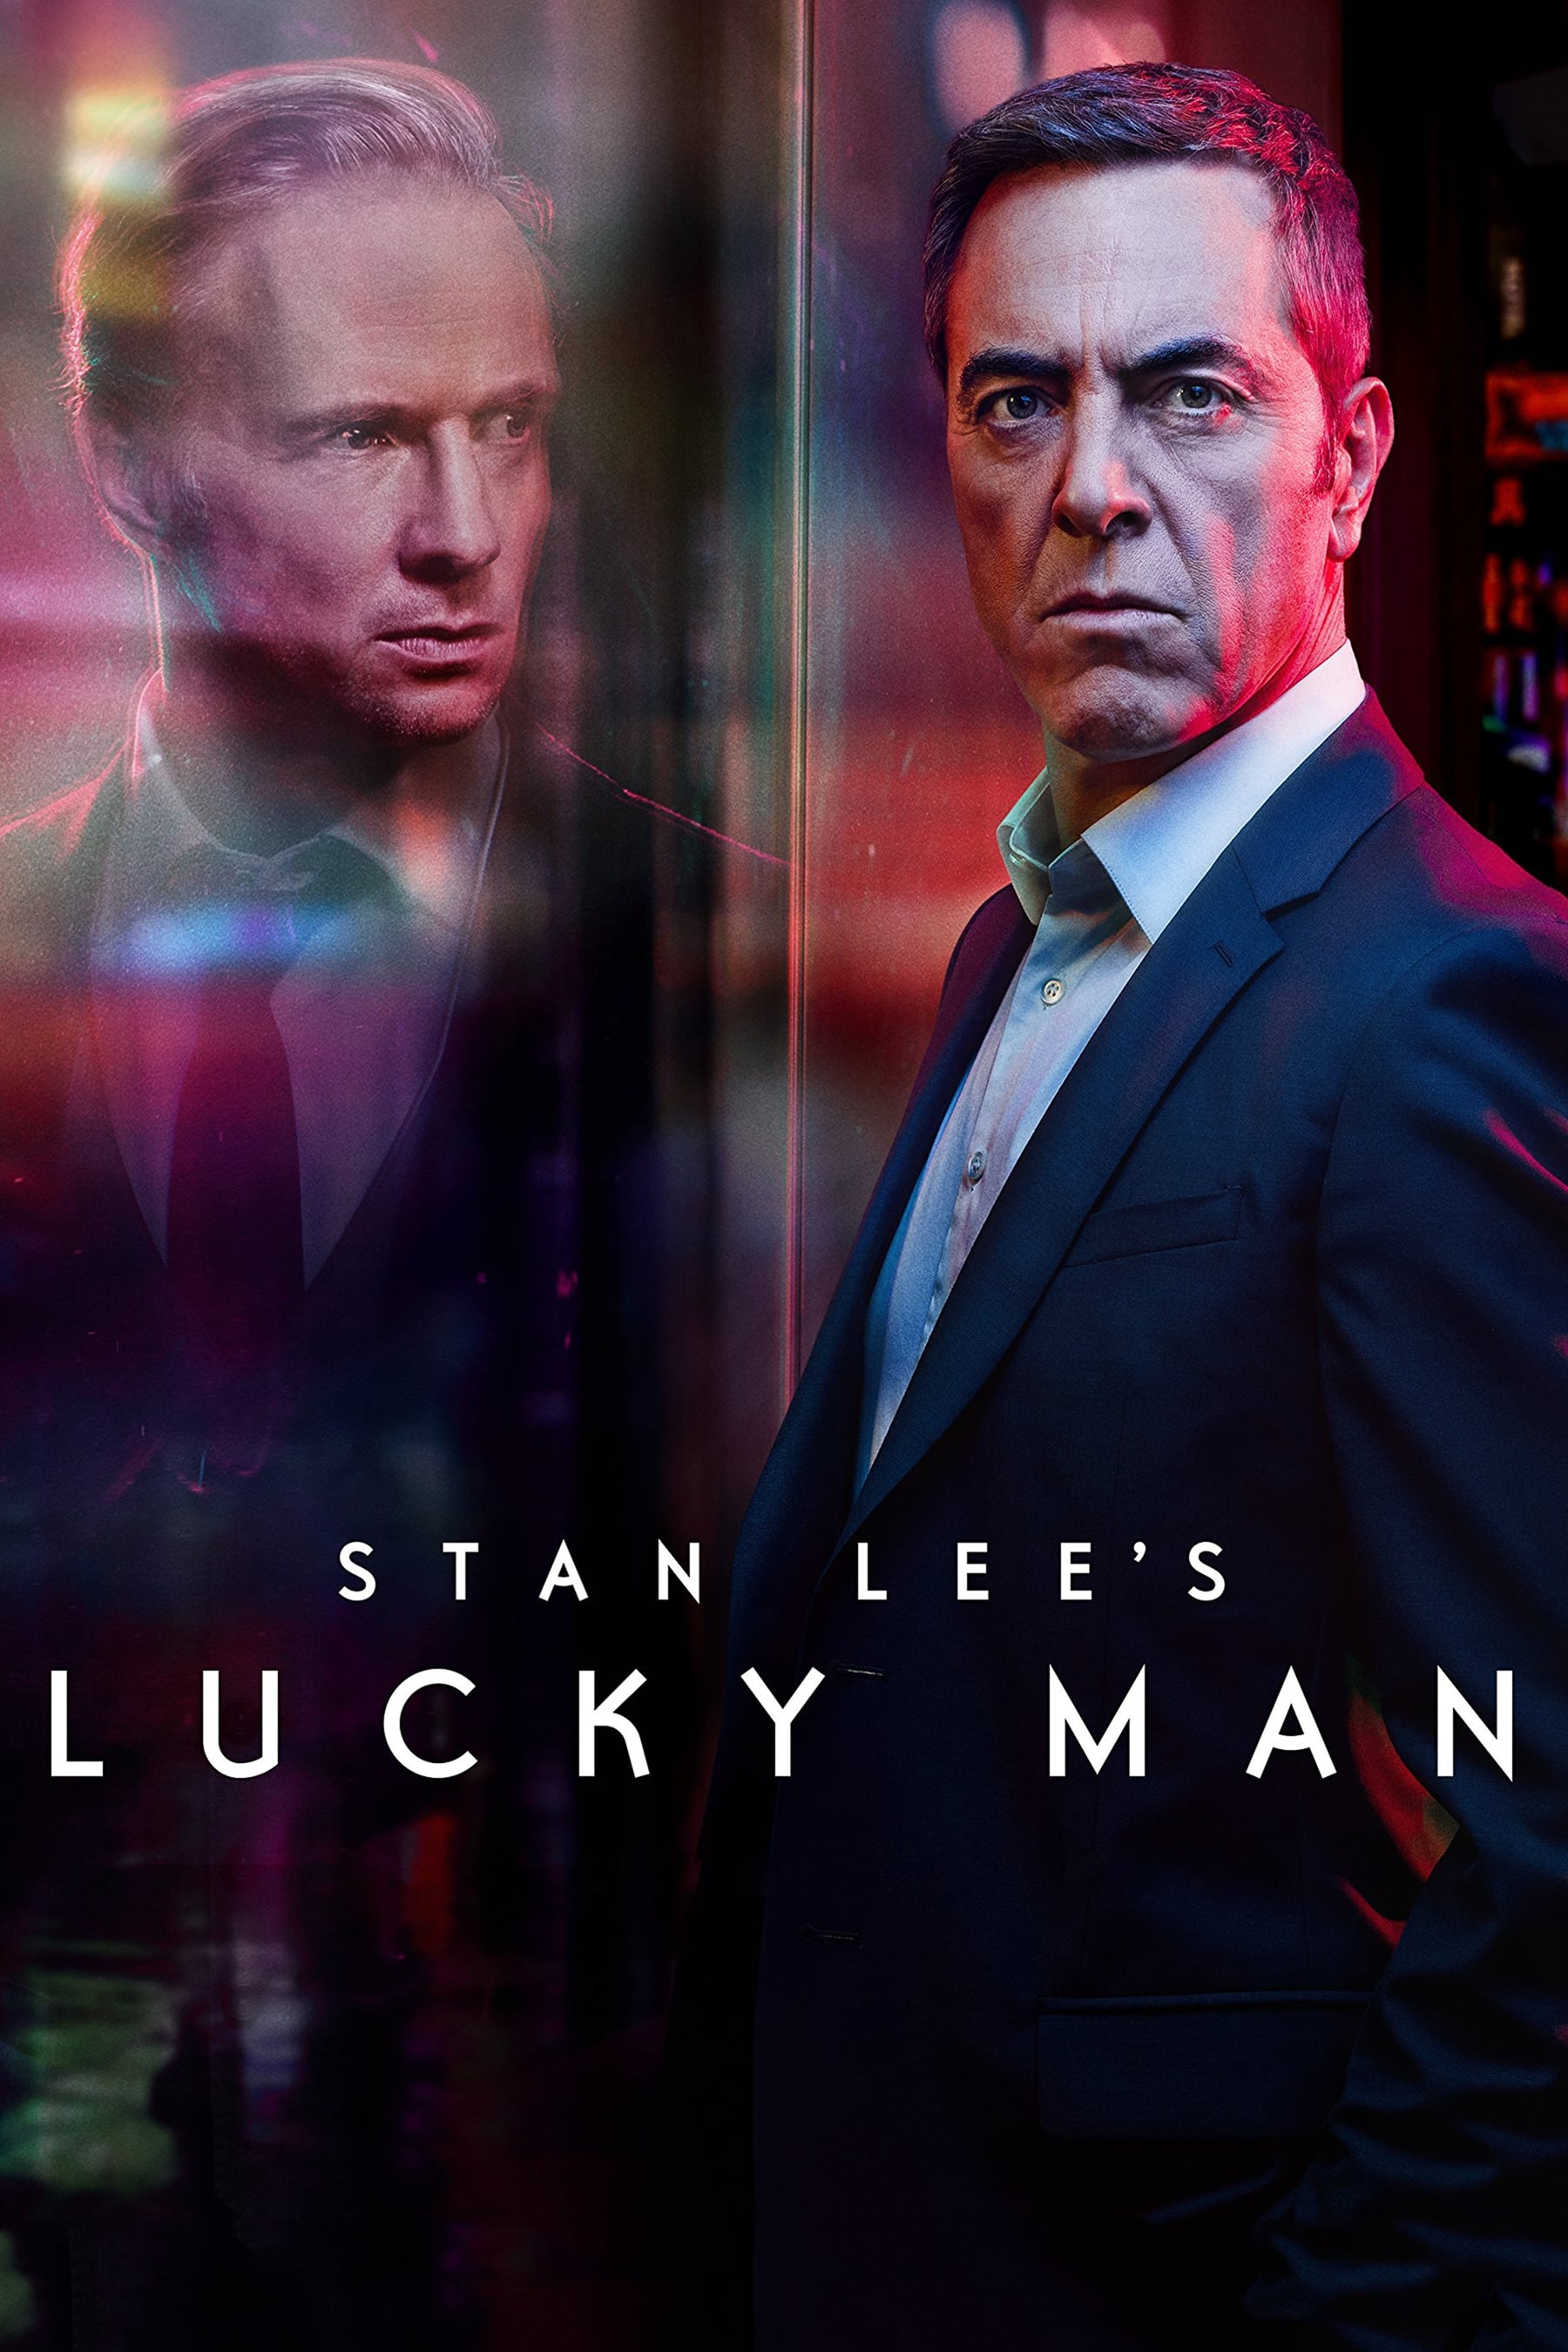 Image Stan Lee's Lucky Man